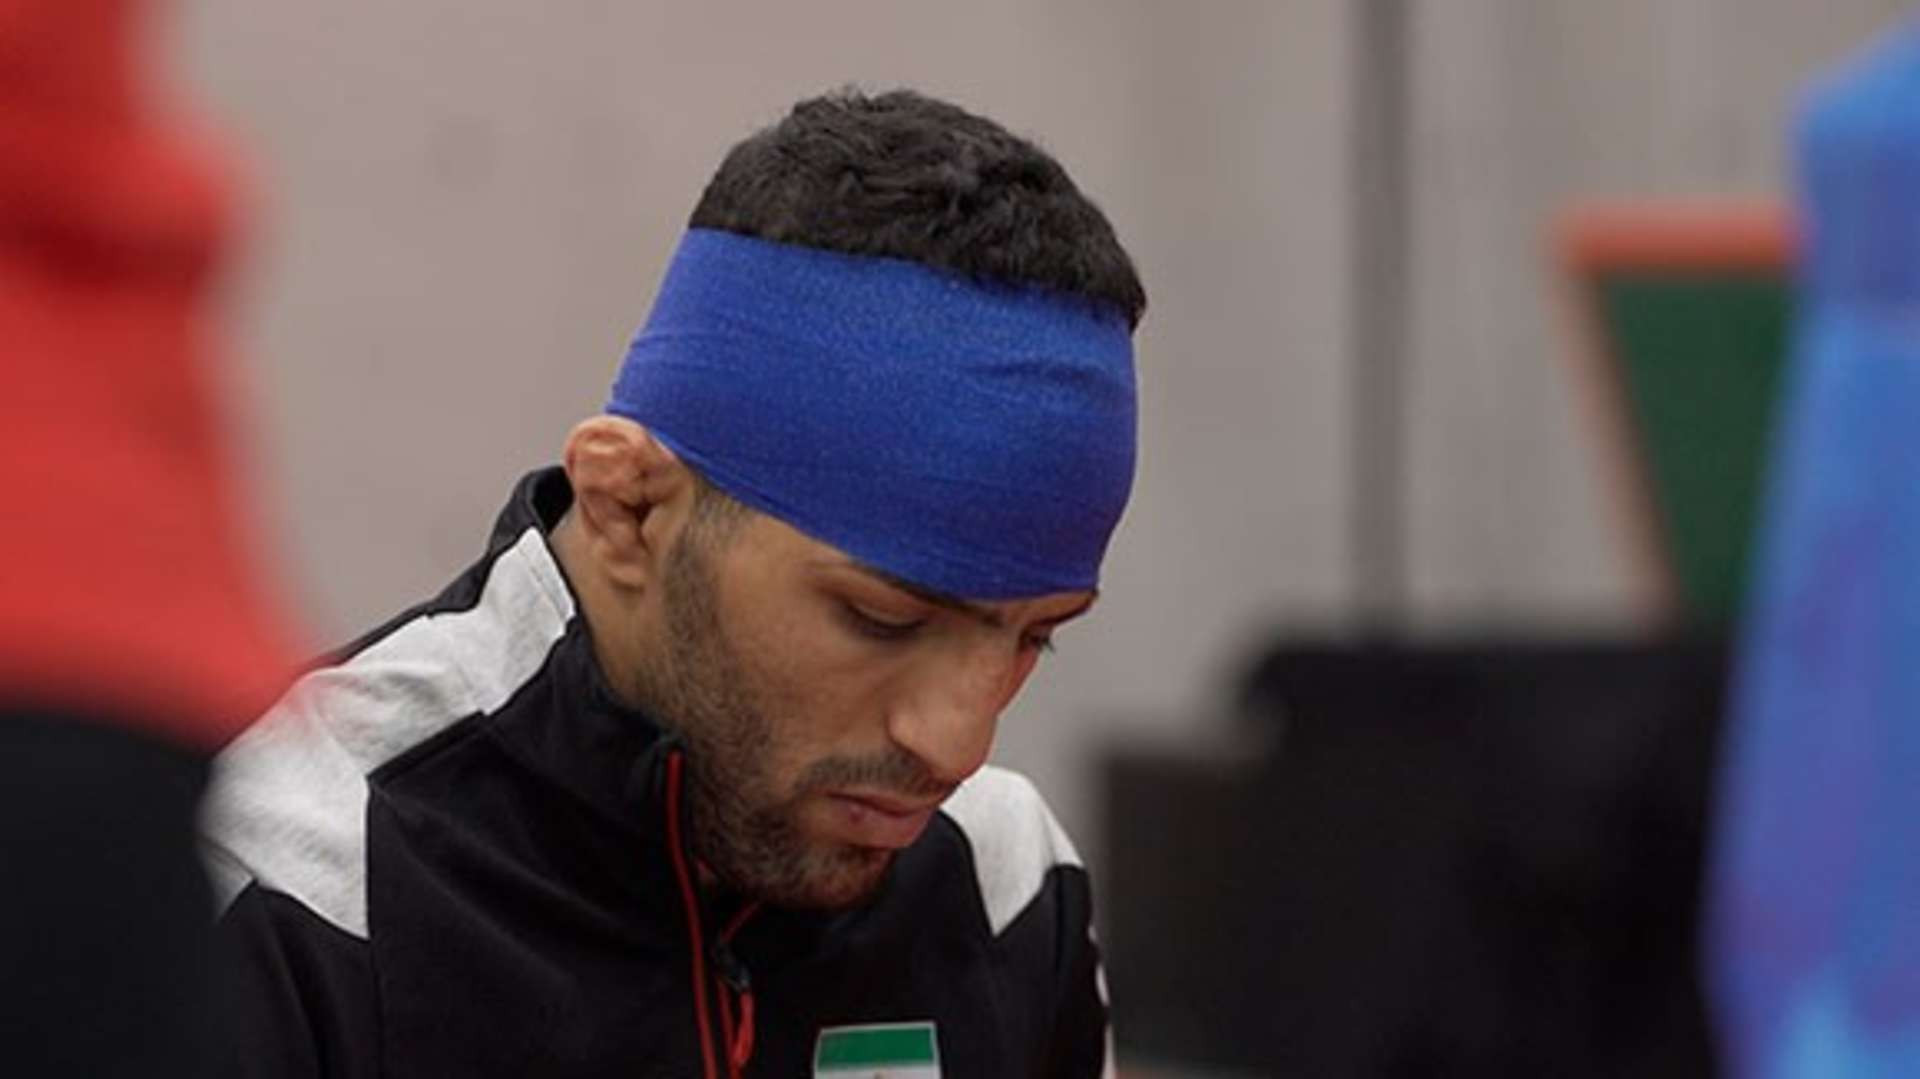 Saeid Mollaei said he was threatened by Iranian officials at the 2019 World Judo Championships ©IJF